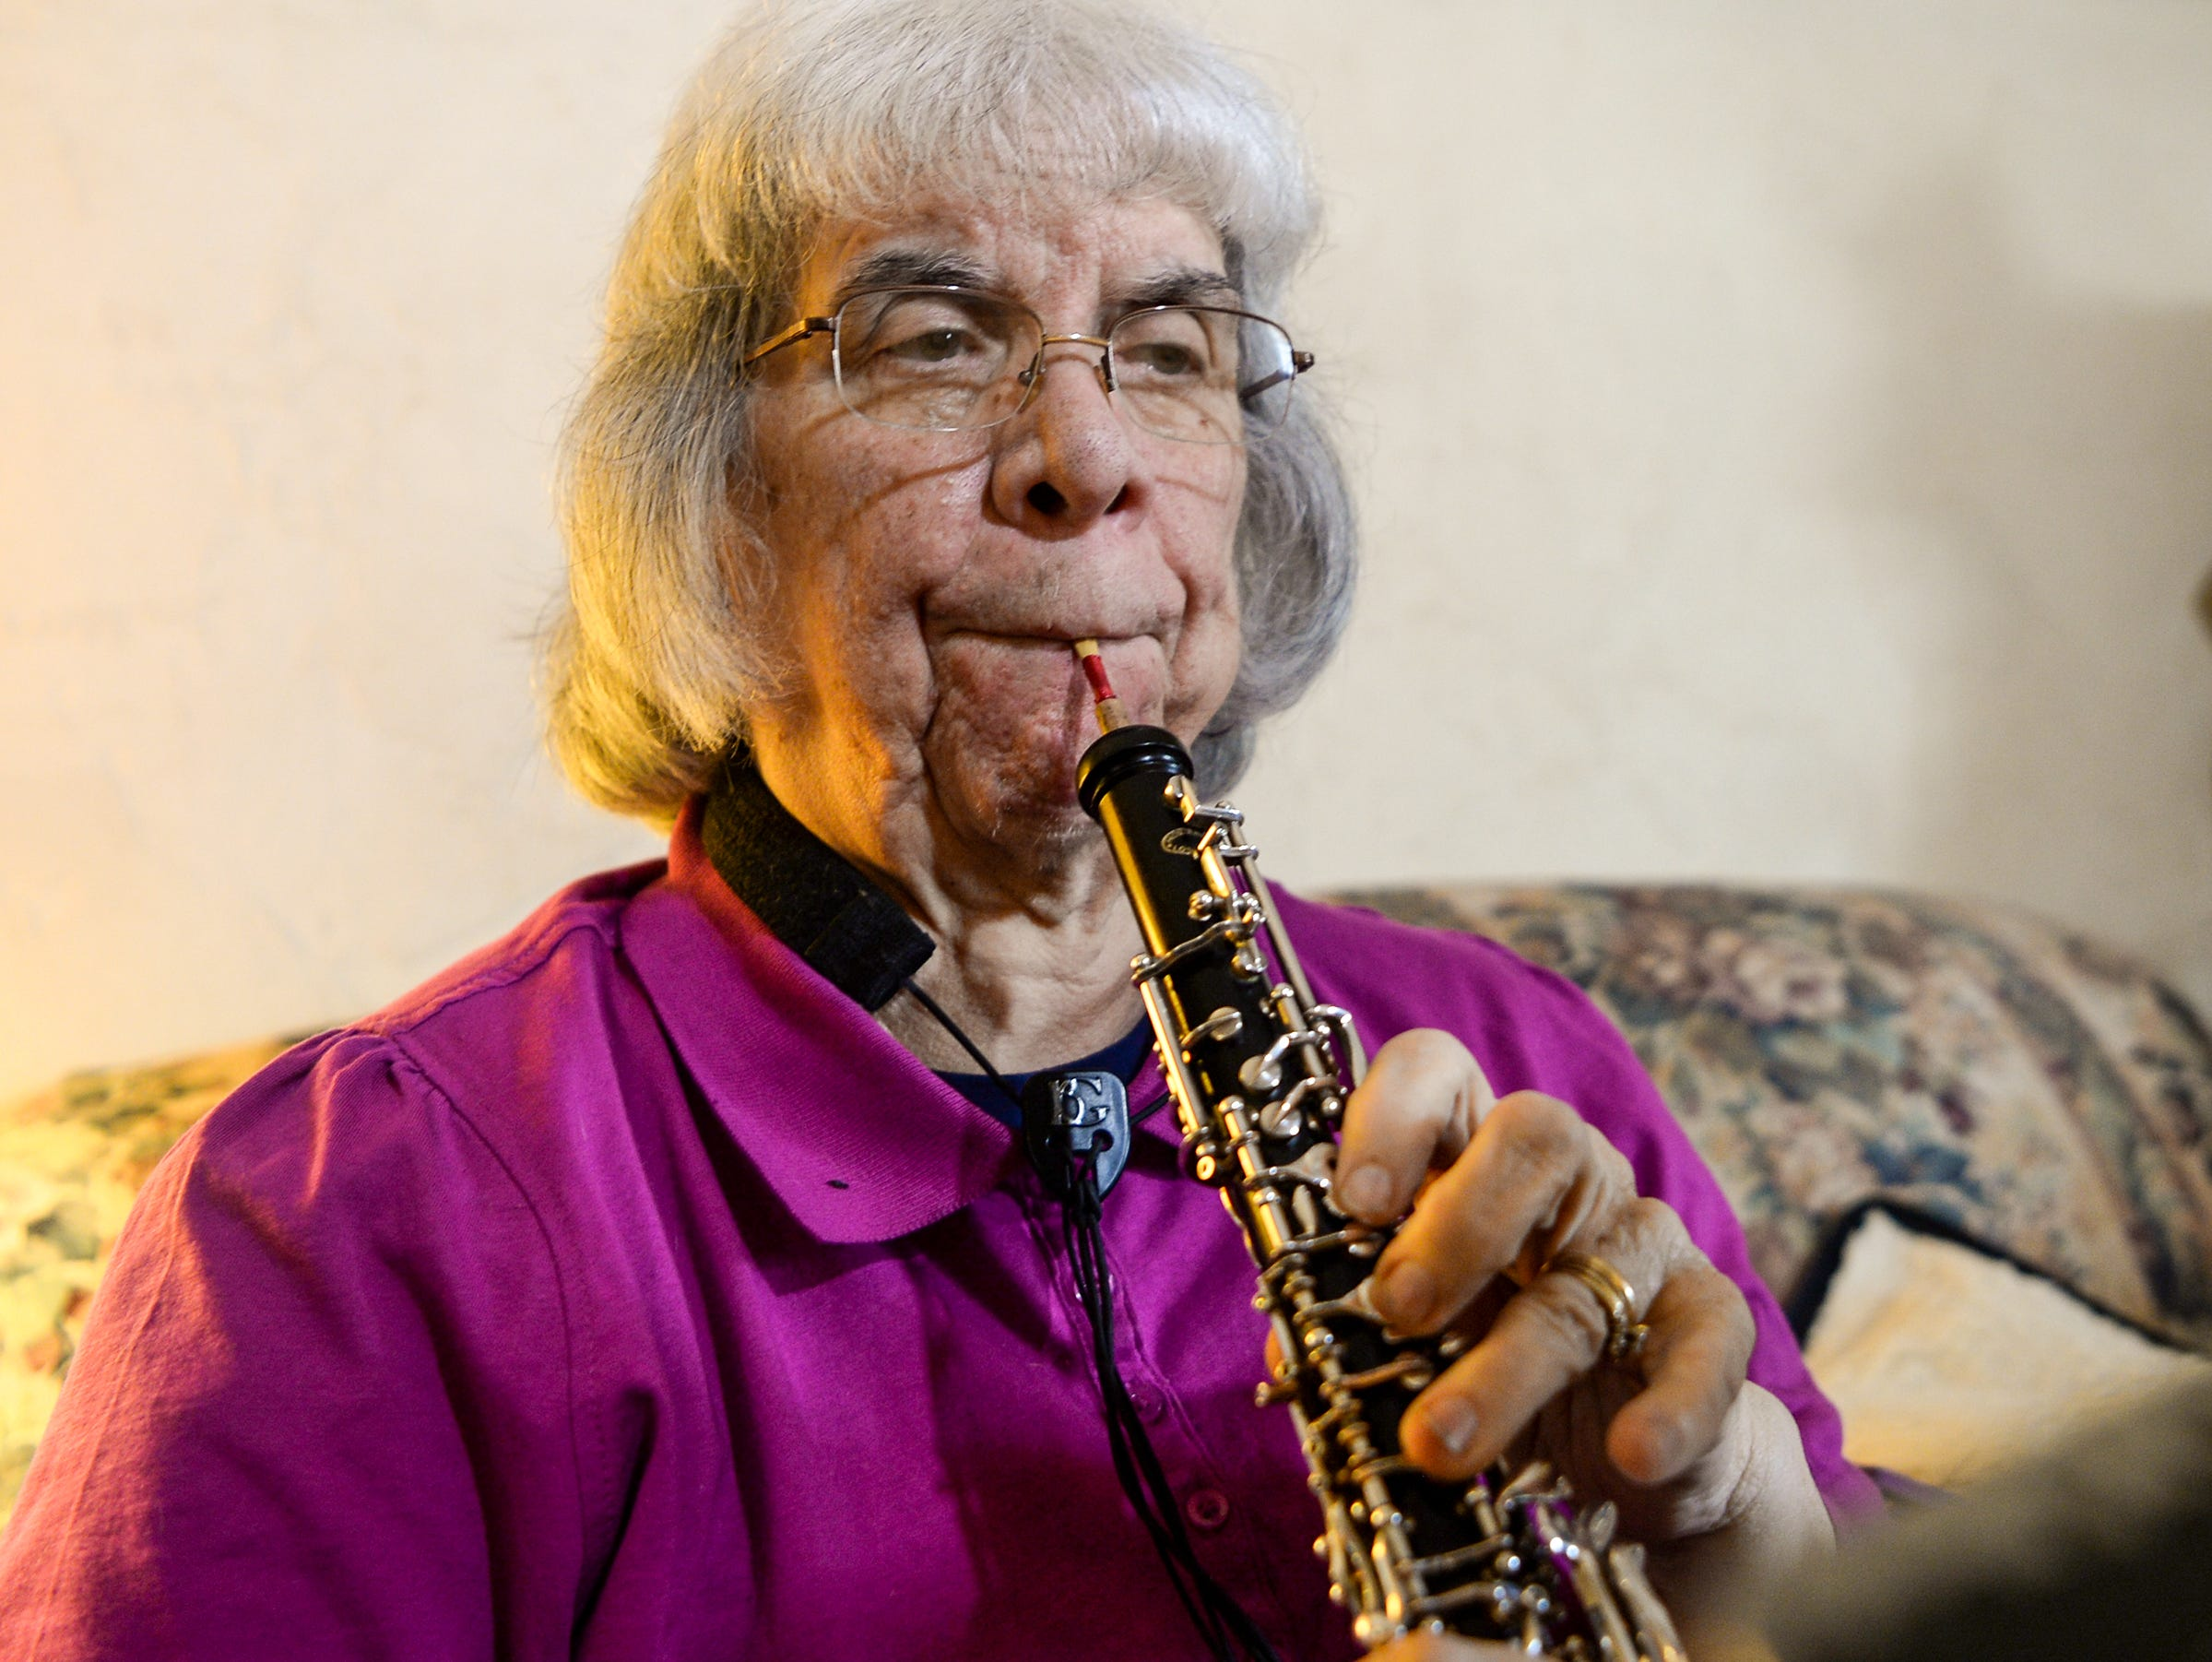 Linda Dupont of Easley plays her obo at her home in February, something she says helps her as she copes with the loss of her husband Richard. Dupont says she misses him after he died during a rehearsal with the Anderson Symphony Orchestra, and grateful for the group helping her in her time of need.